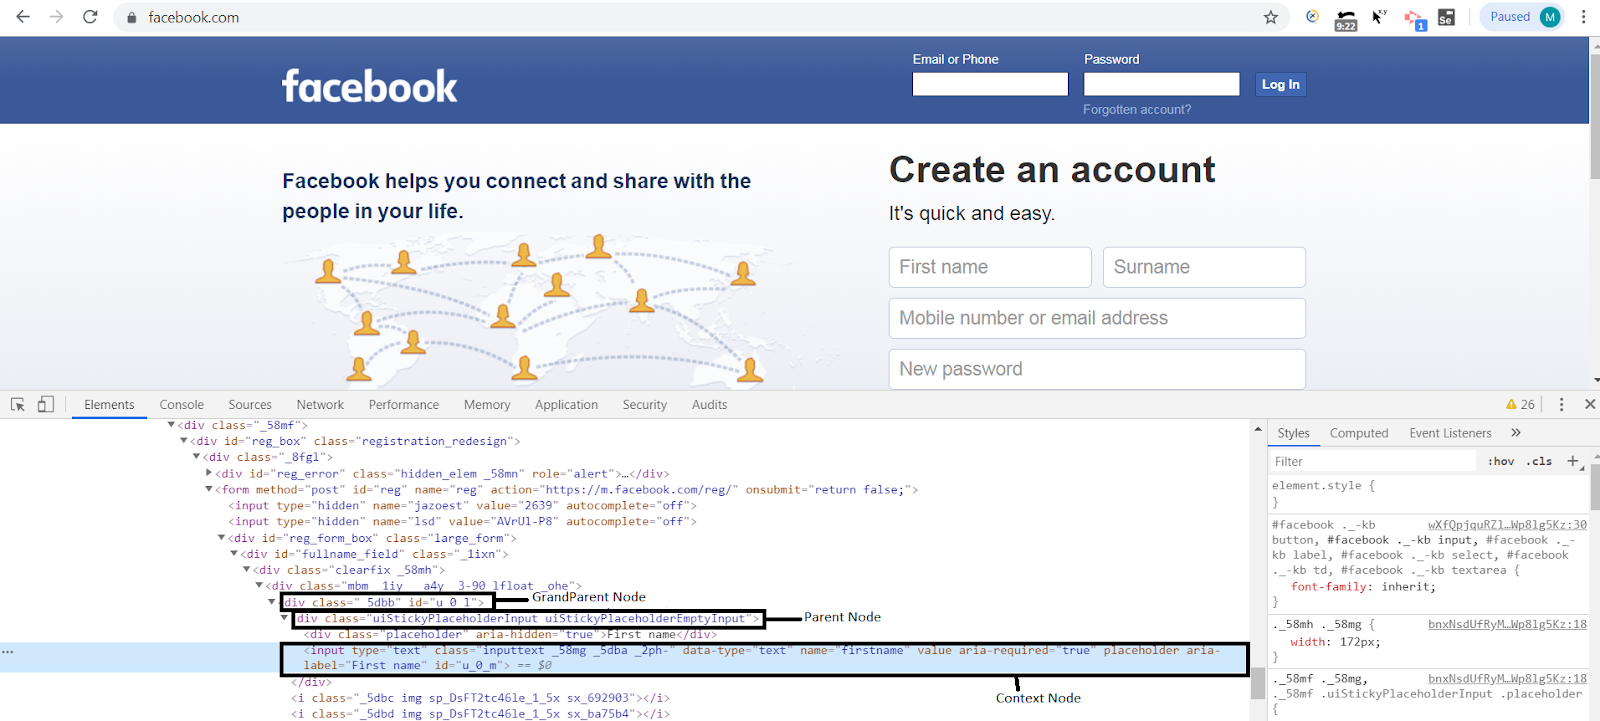 Facebook XPath in Selenium example